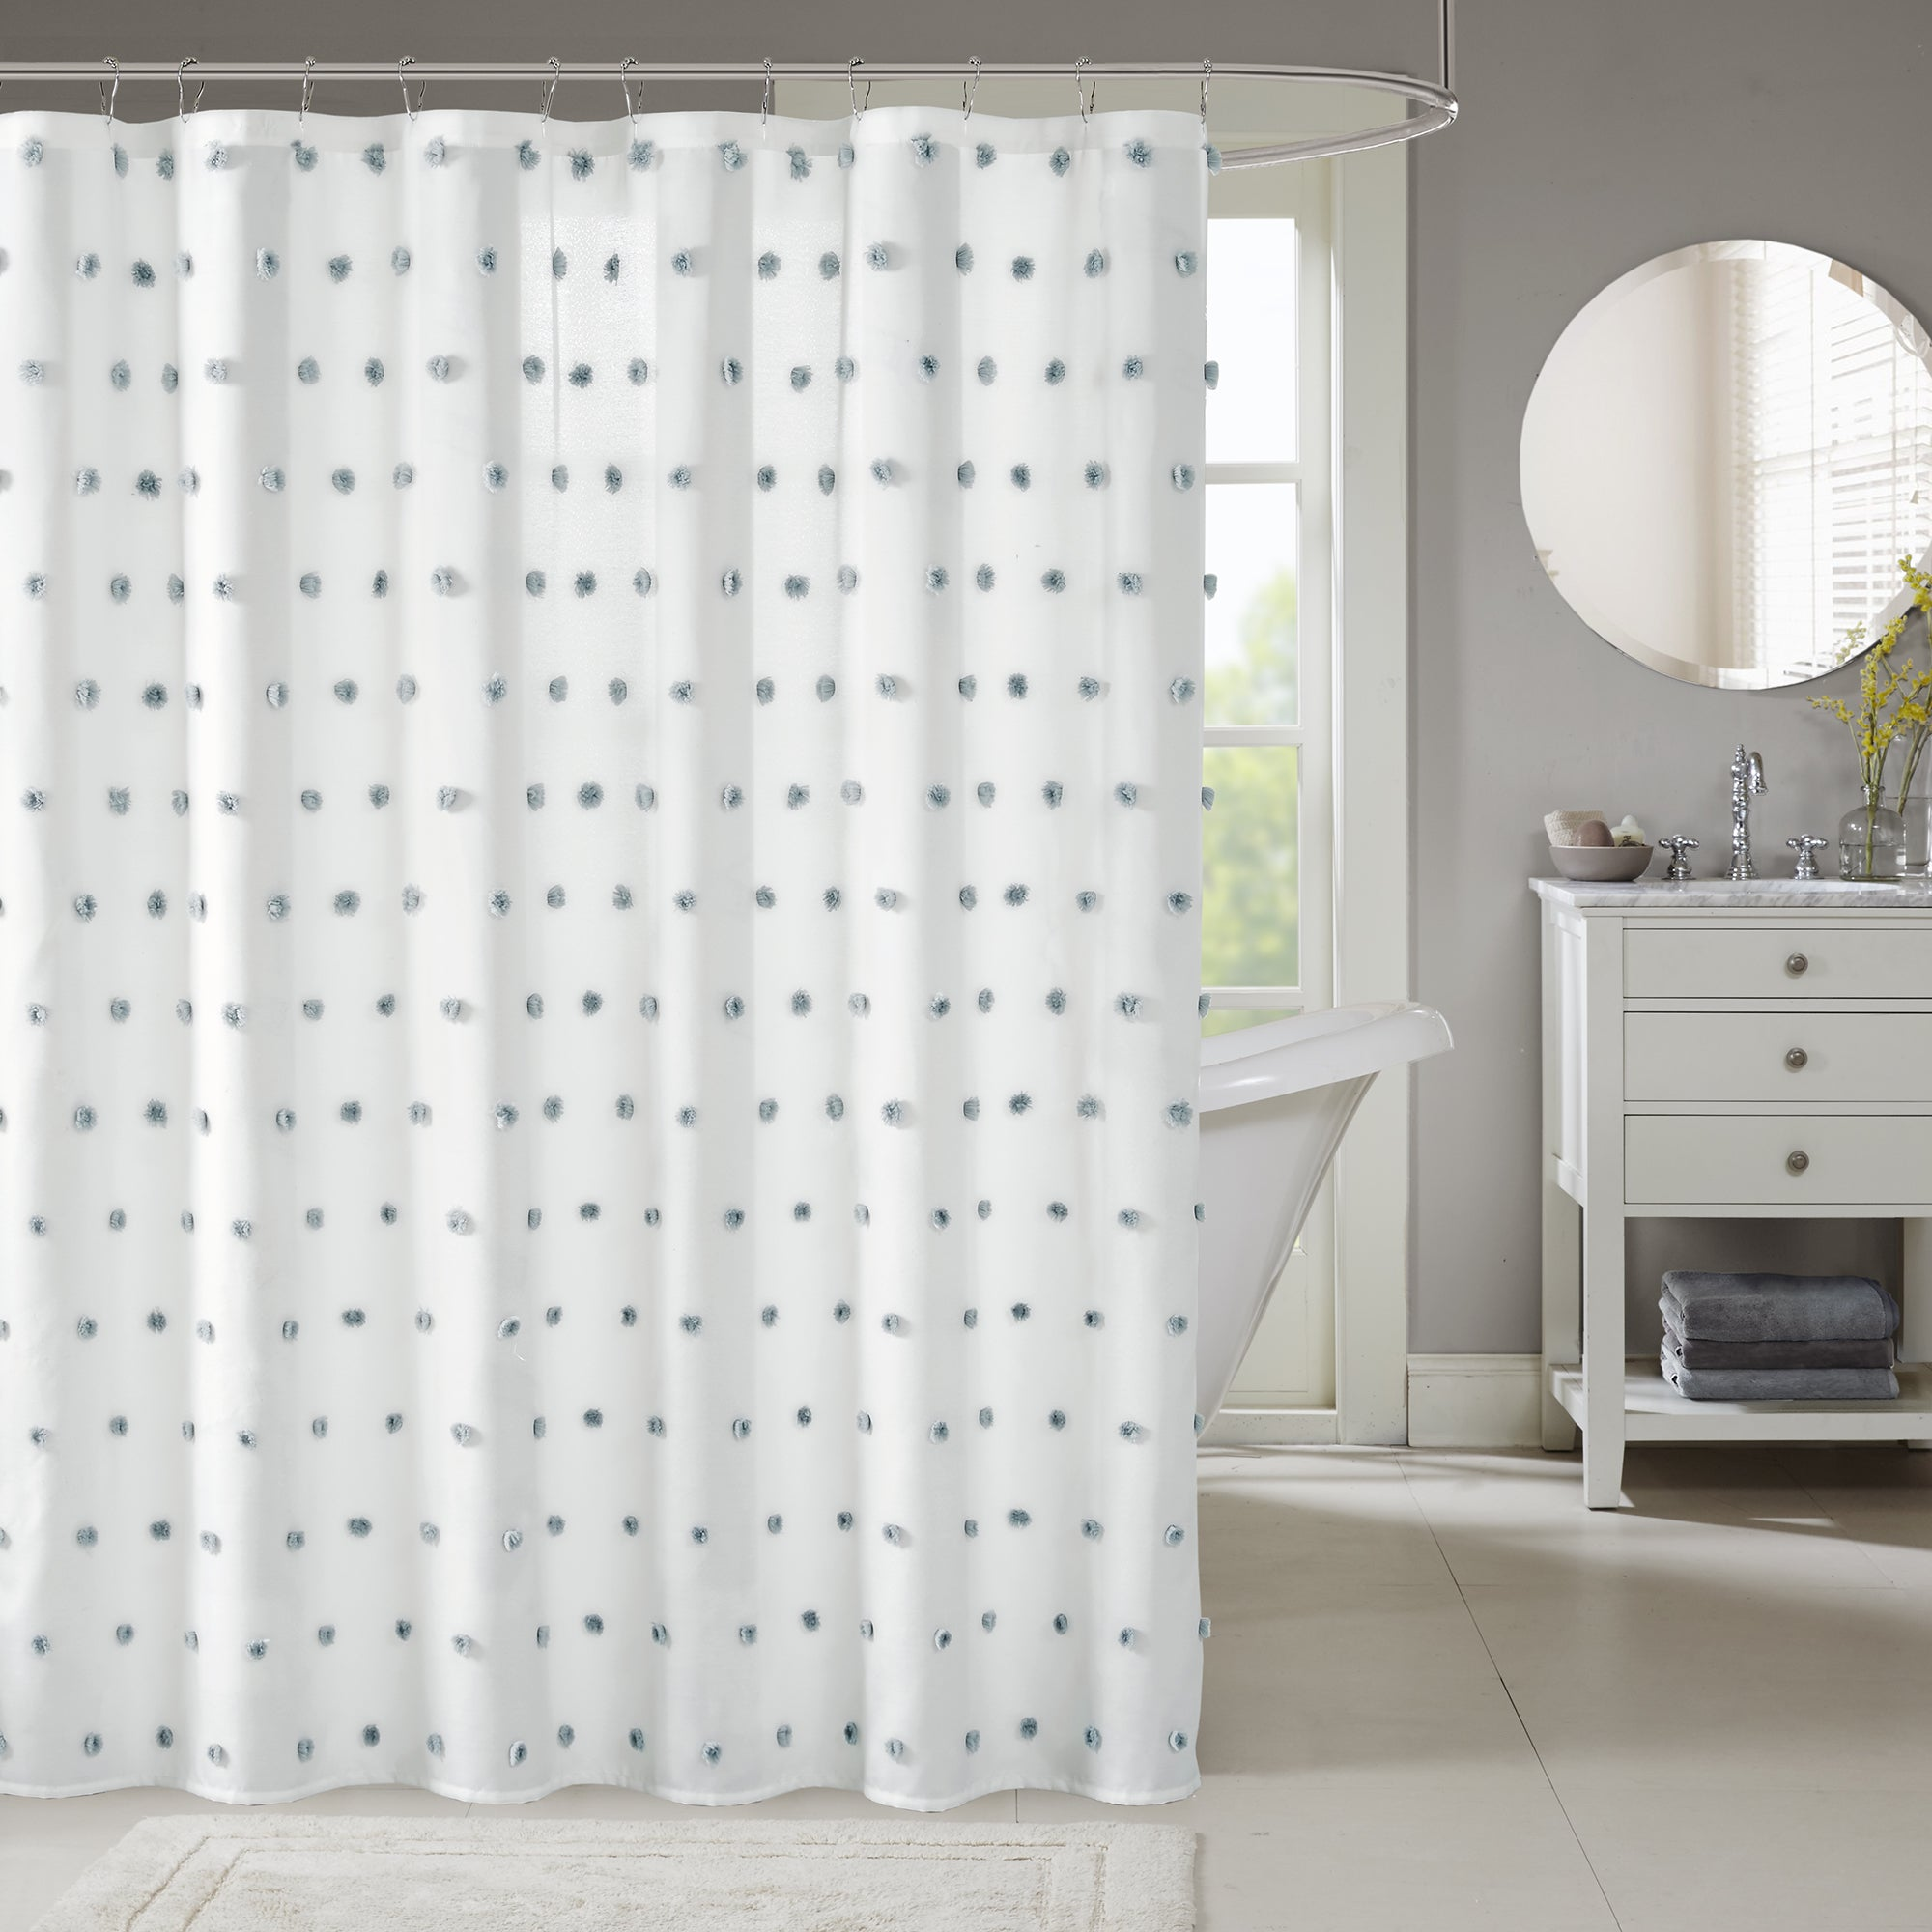 color bath cotton reed park product bedding shower today madison curtain gray option free duck shipping grey overstock